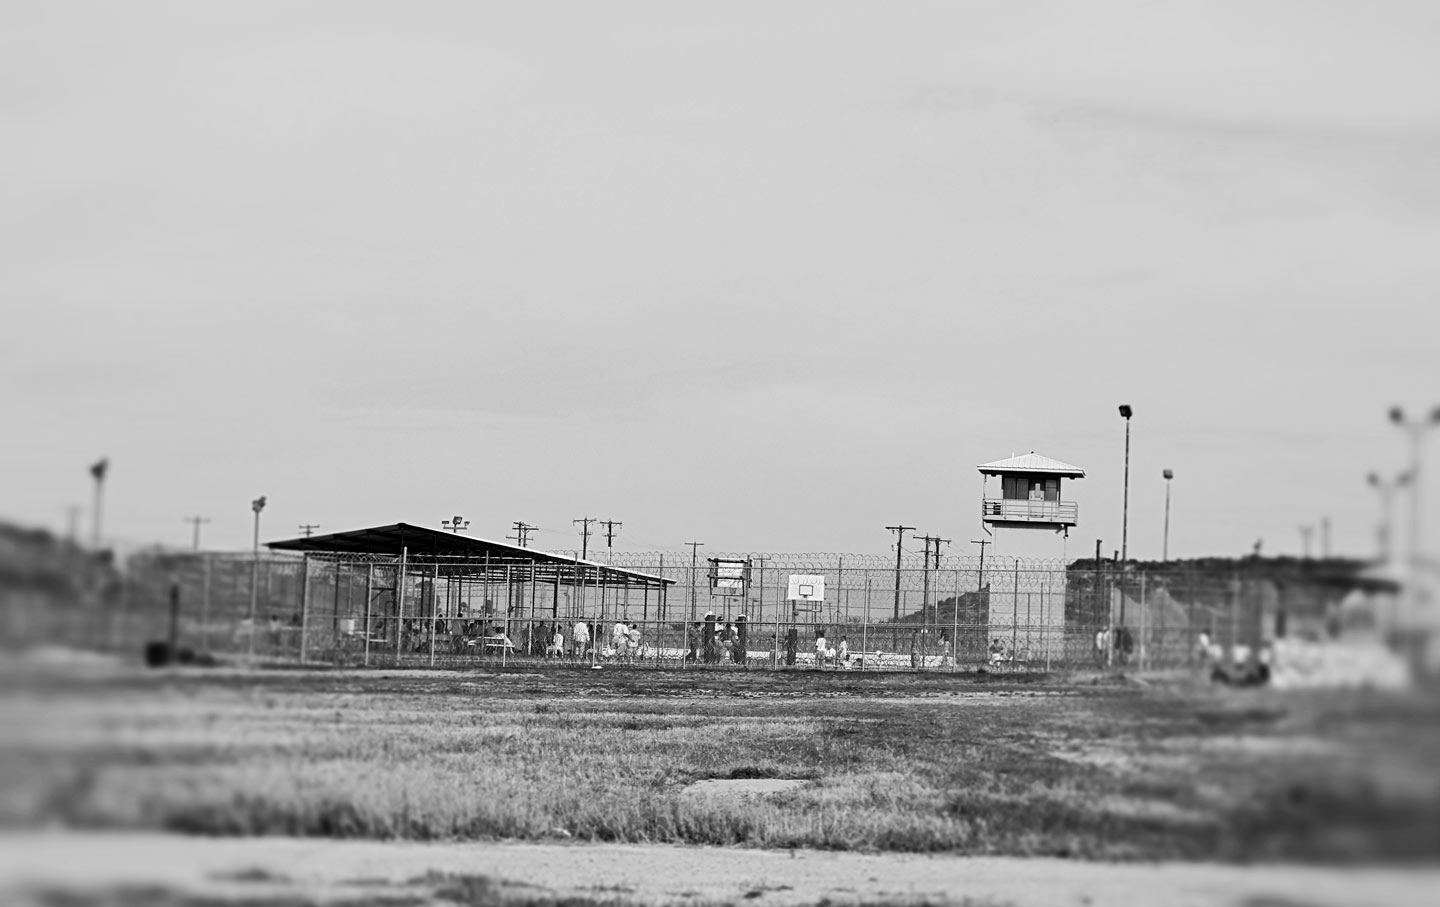 Federal Correctional Institution, Big Spring, a low-security United States federal prison for male inmates in Texas.